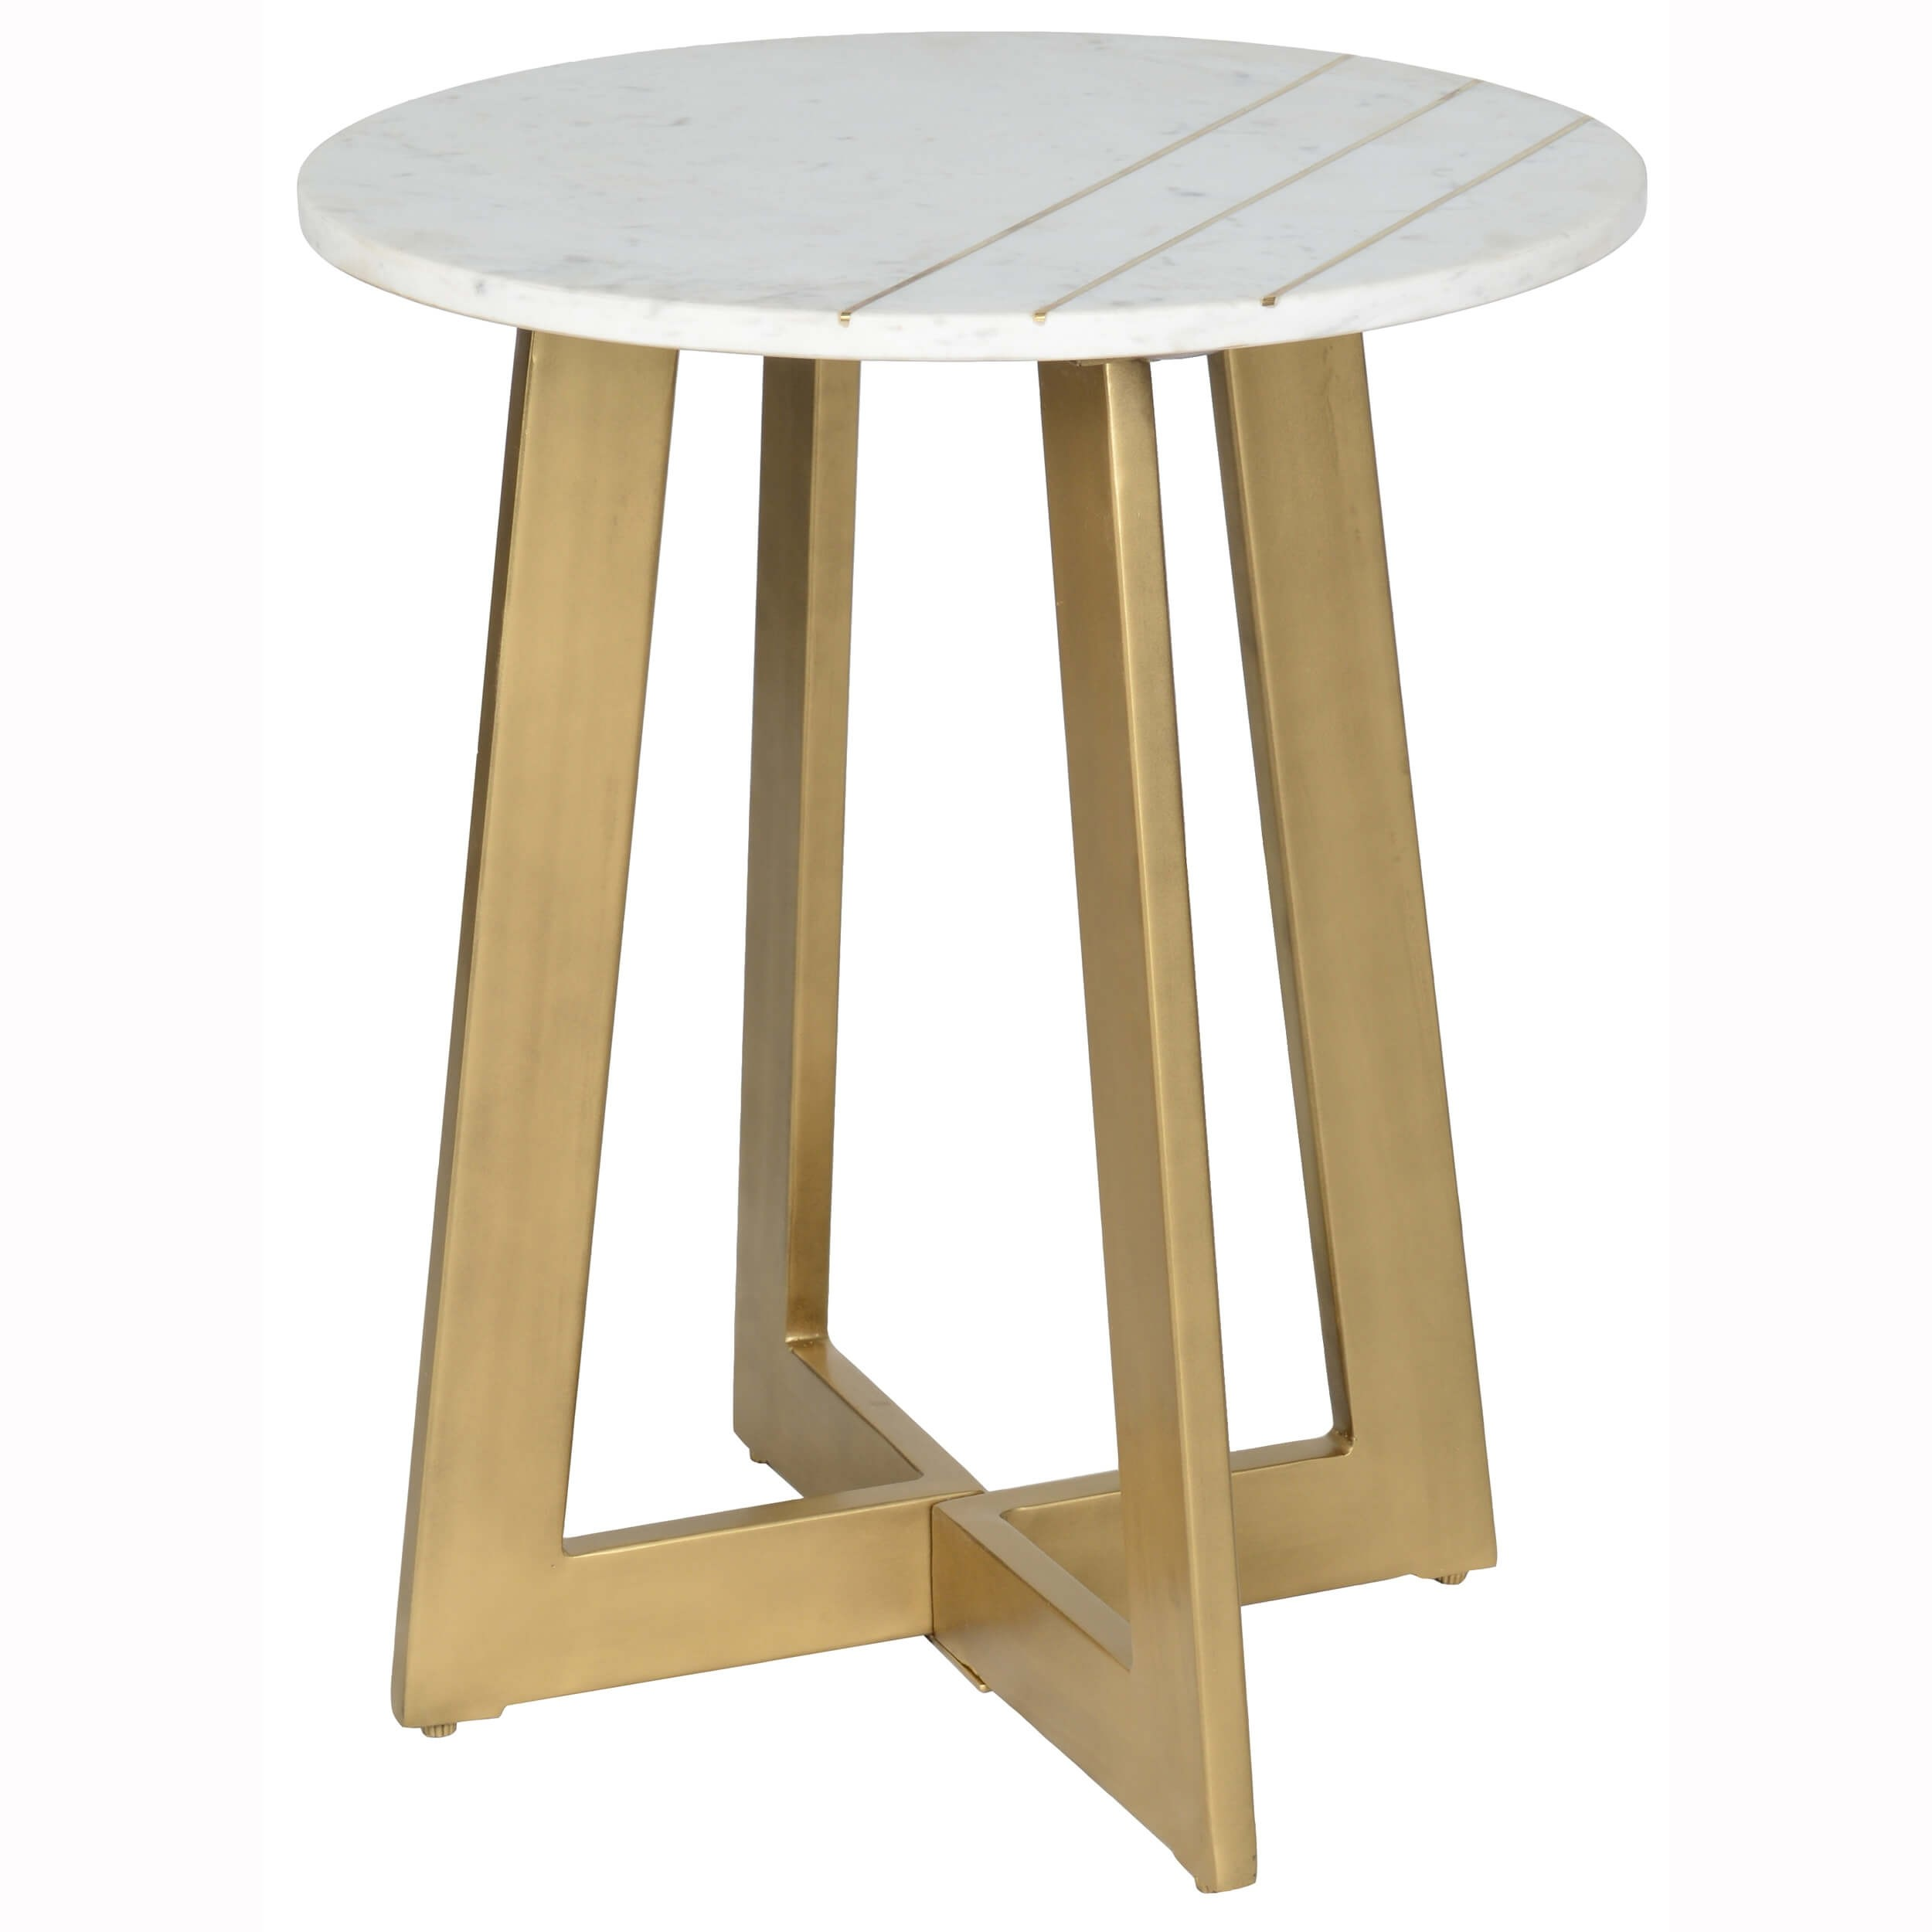 fairfield end table tables accent furniture rustic round dining battery led desk lamp nautical furnishings very narrow hall nate berkus gold with marble top drum seat oak side